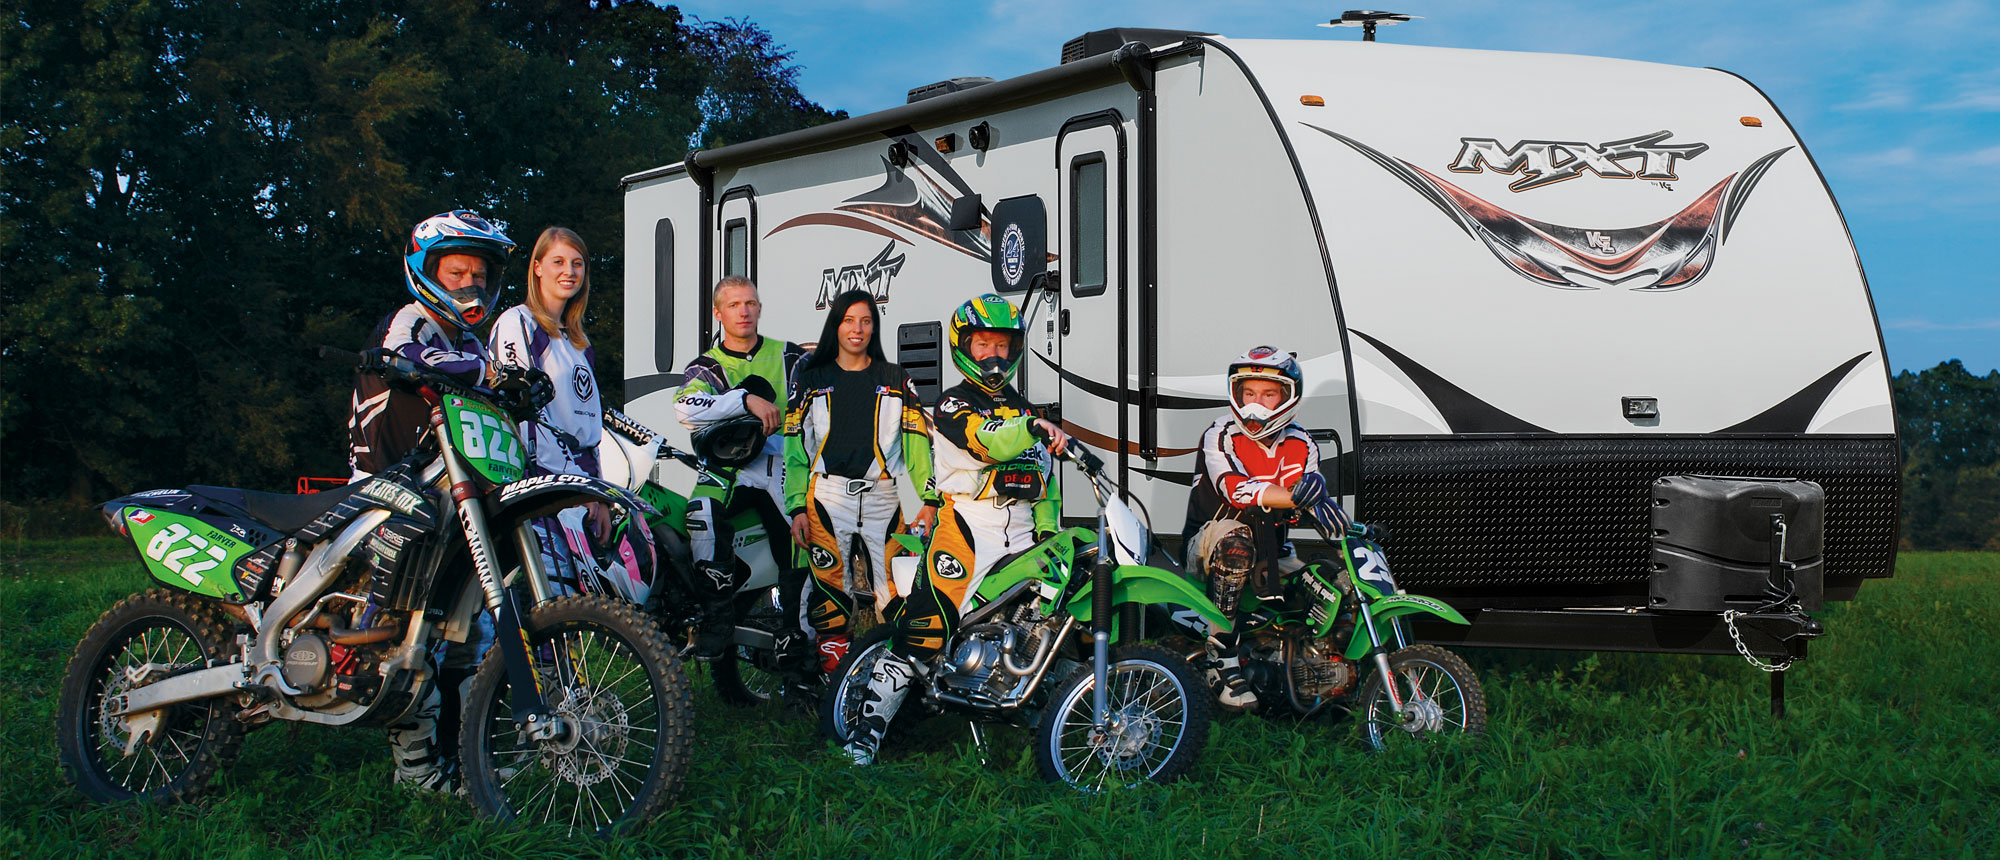 K-Z RV MXT Lightweight Travel Trailer Toy Haulers Dirtbiking Group Outdoors Lifestyle